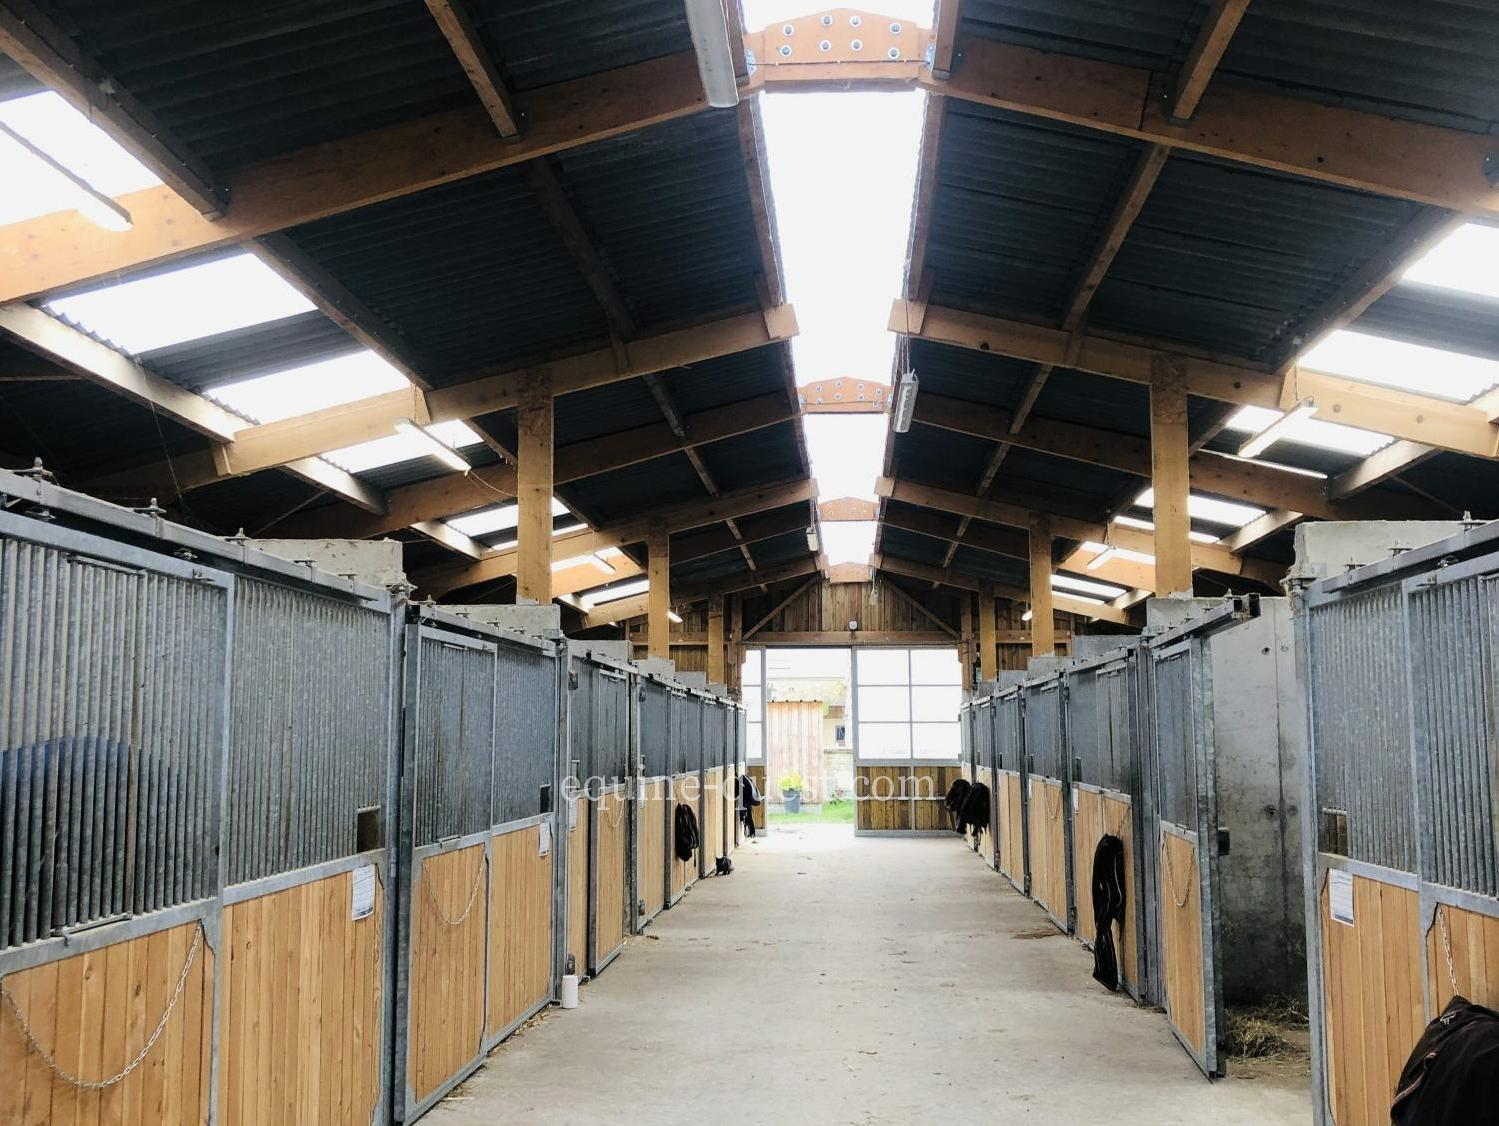 Normandy -Pays d'Auge area – Top quality equestrian place